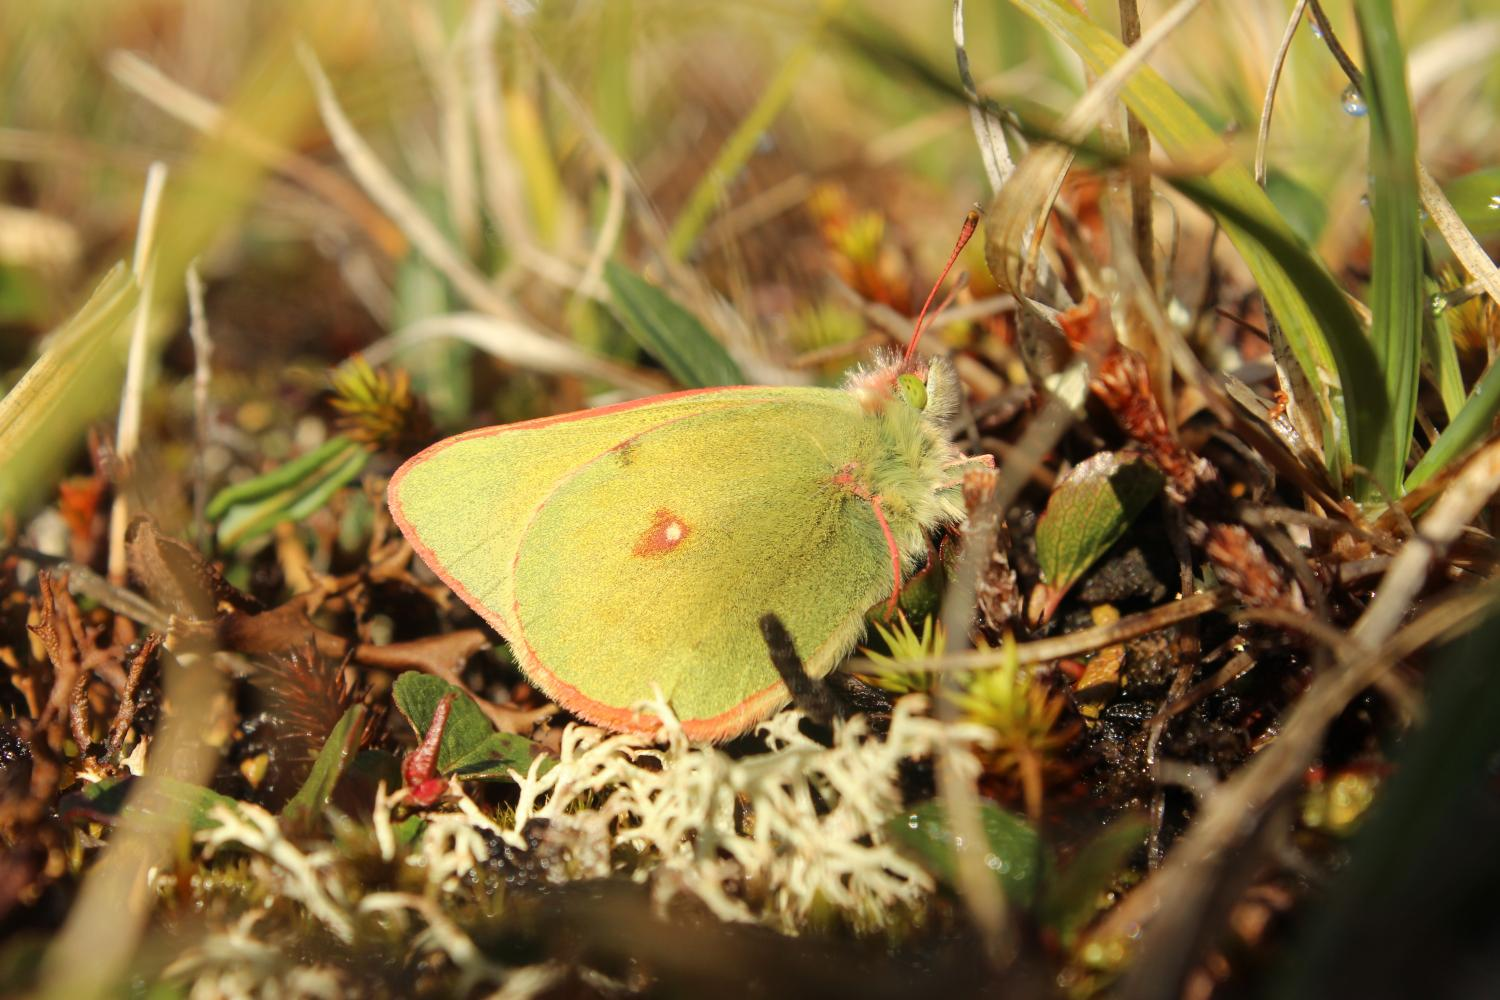 arctic butterflies shrink with rising temperatures